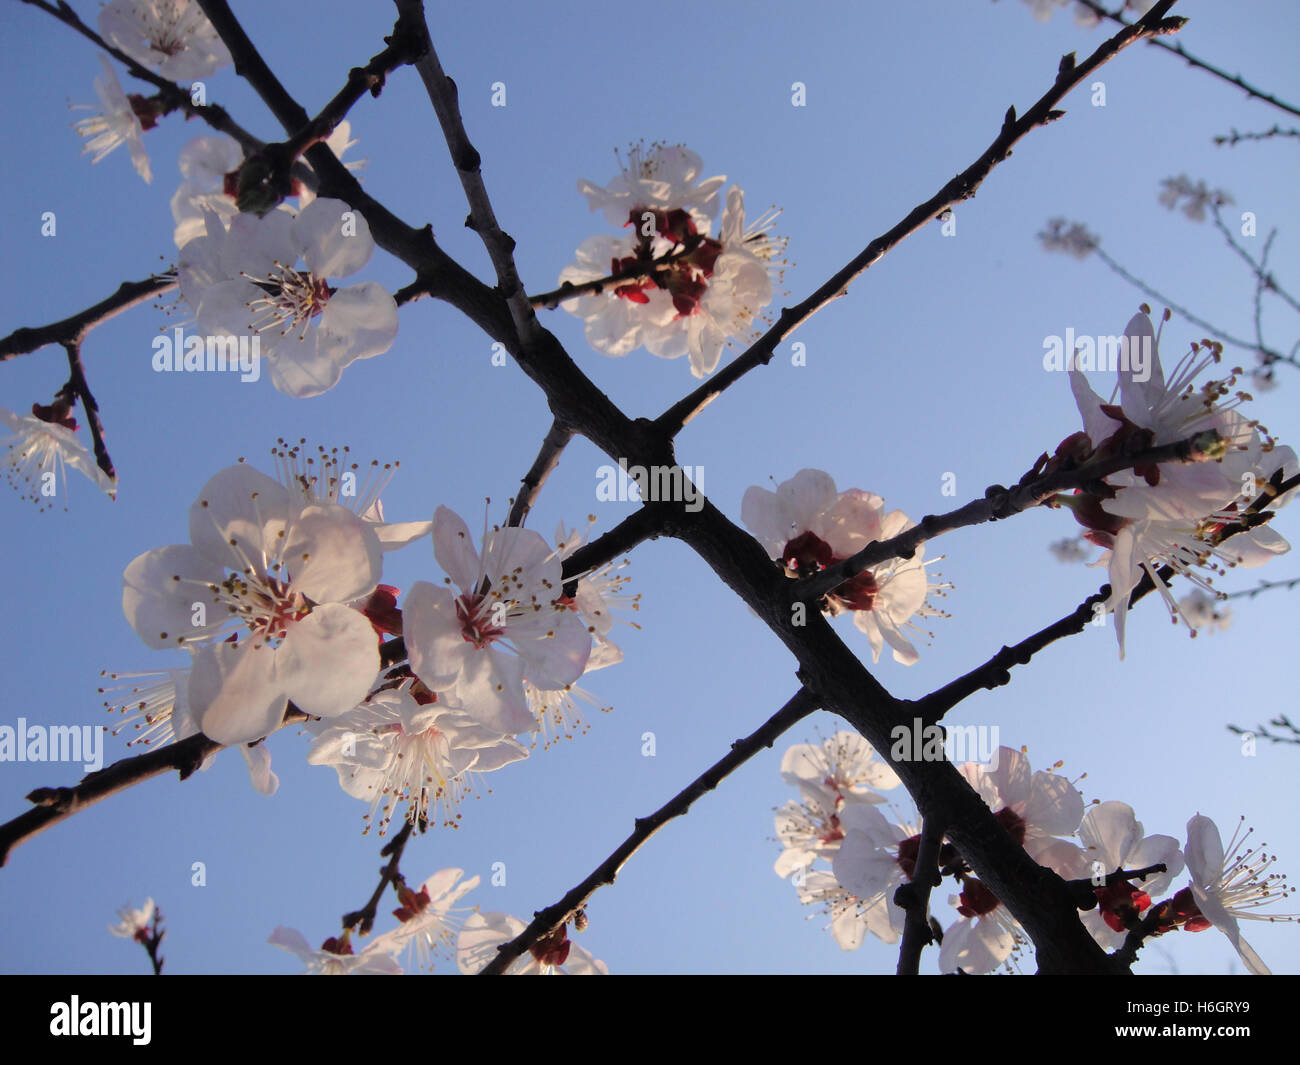 Cherry Blossoms in the early evening sunlight just before sunset during spring at Shichahai, Beijing, China - Stock Image